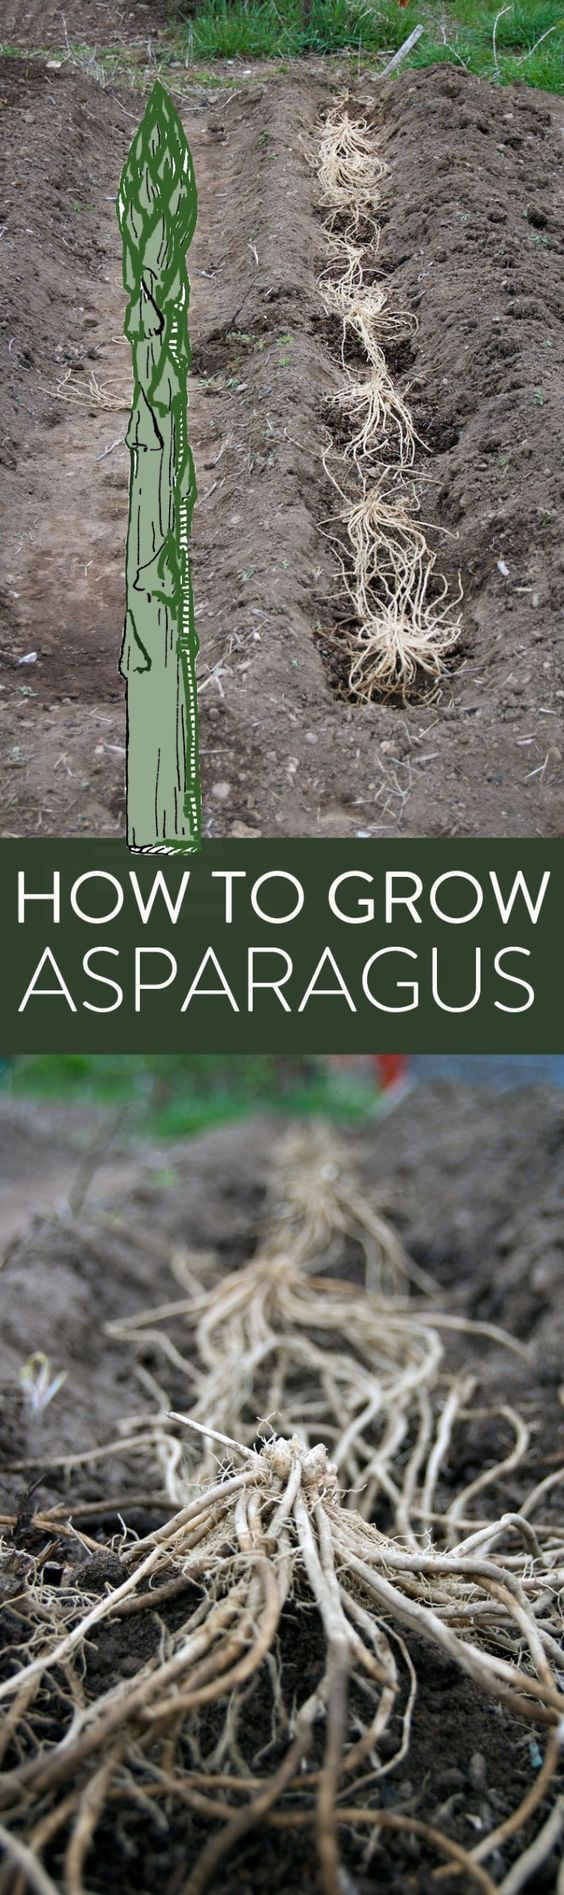 how-to-grow-asparagus-longpin